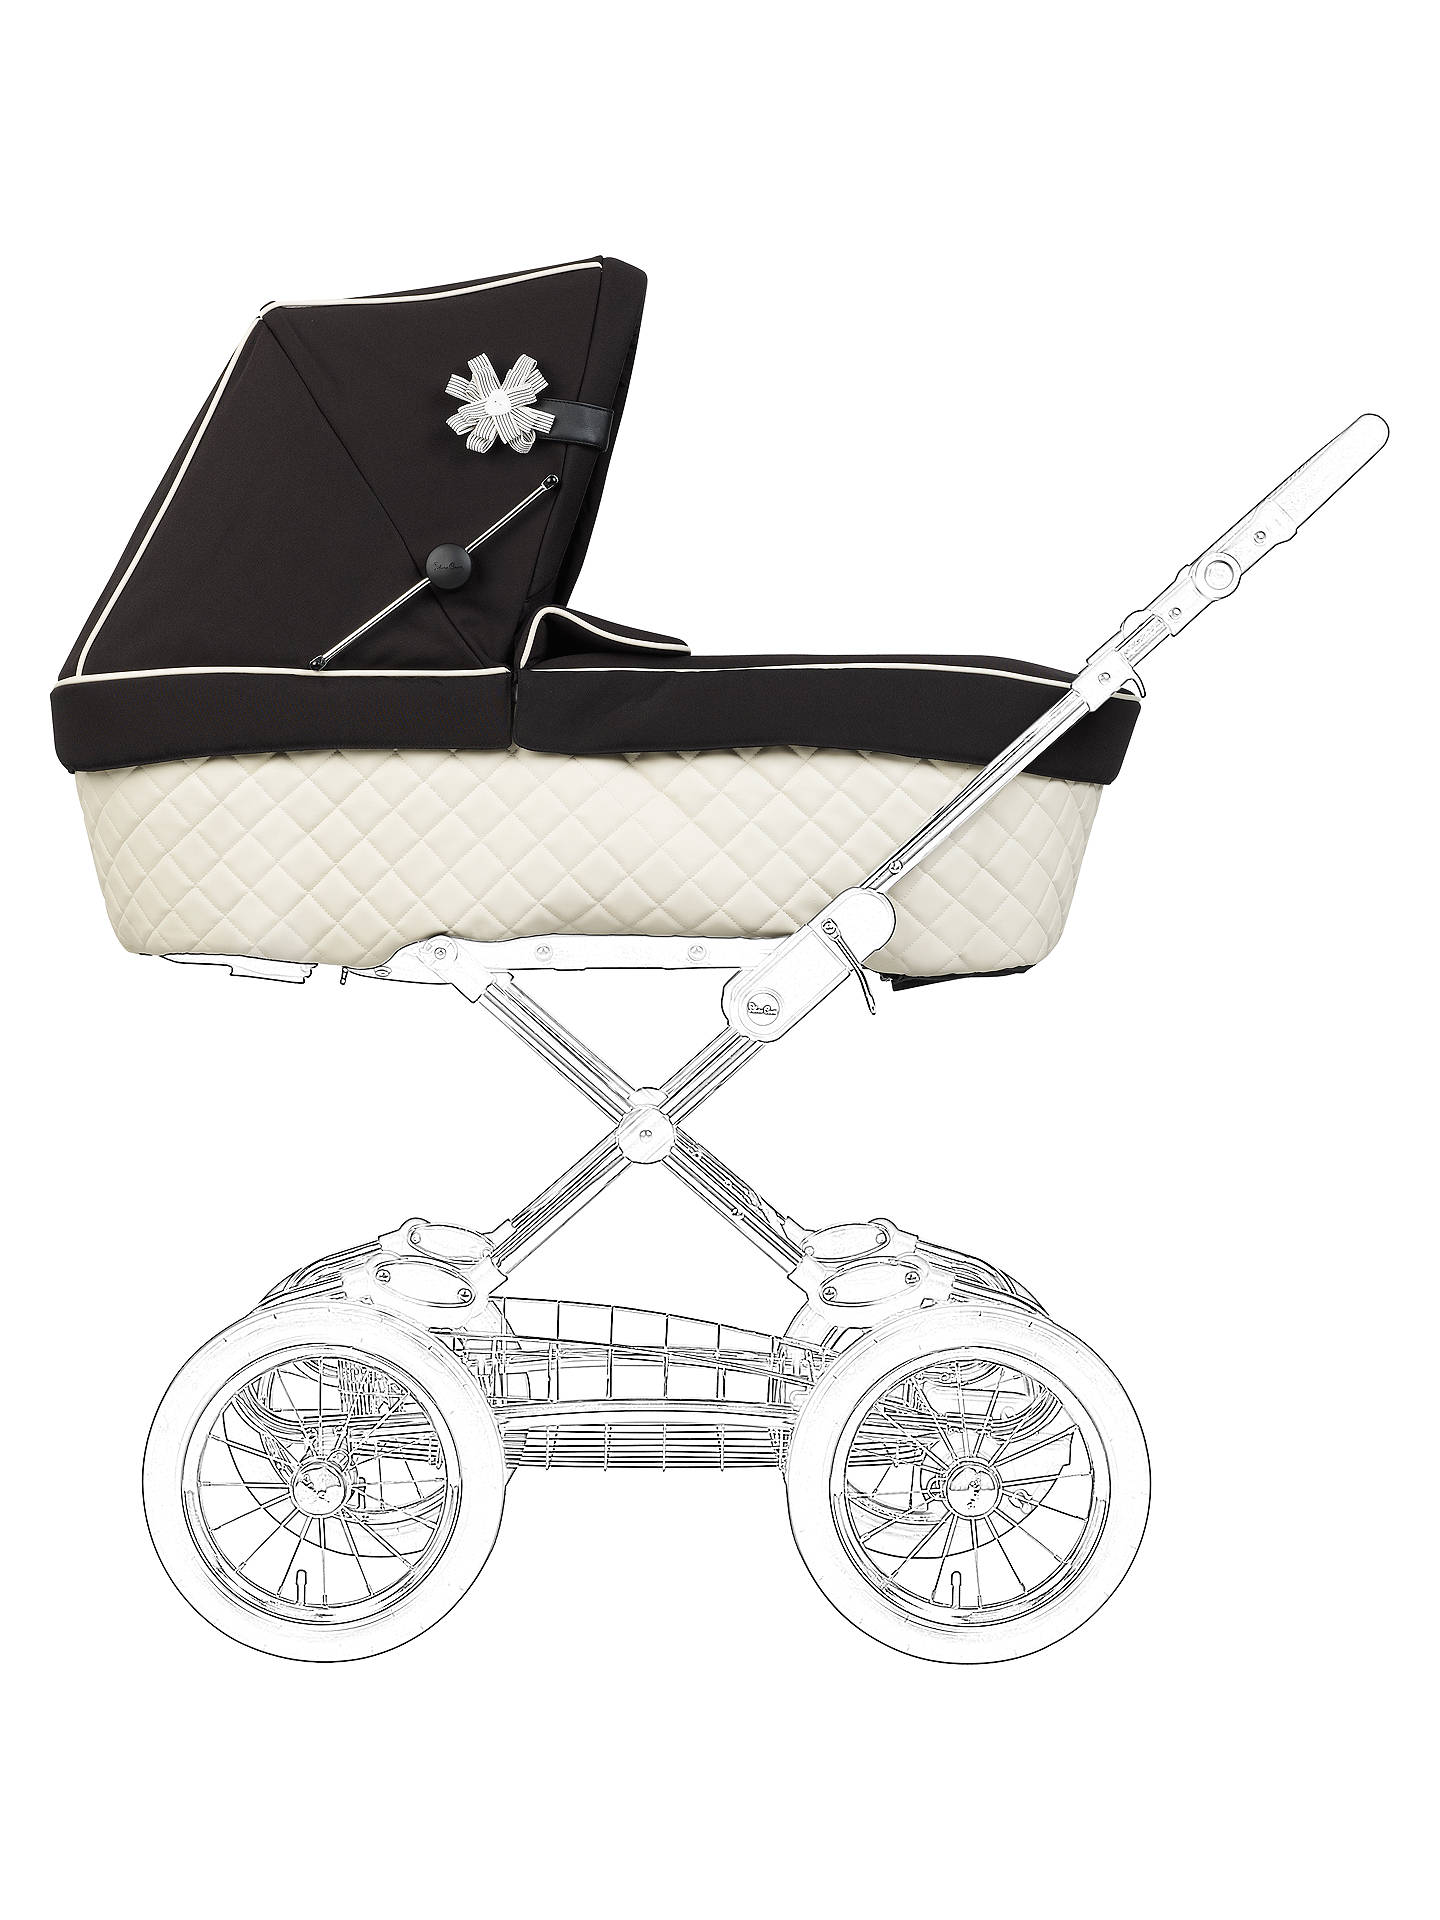 Silver Cross SLEEPOVER Sleep Over MADE IN UK PRAM SAFETY BREATHABLE MATTRESS